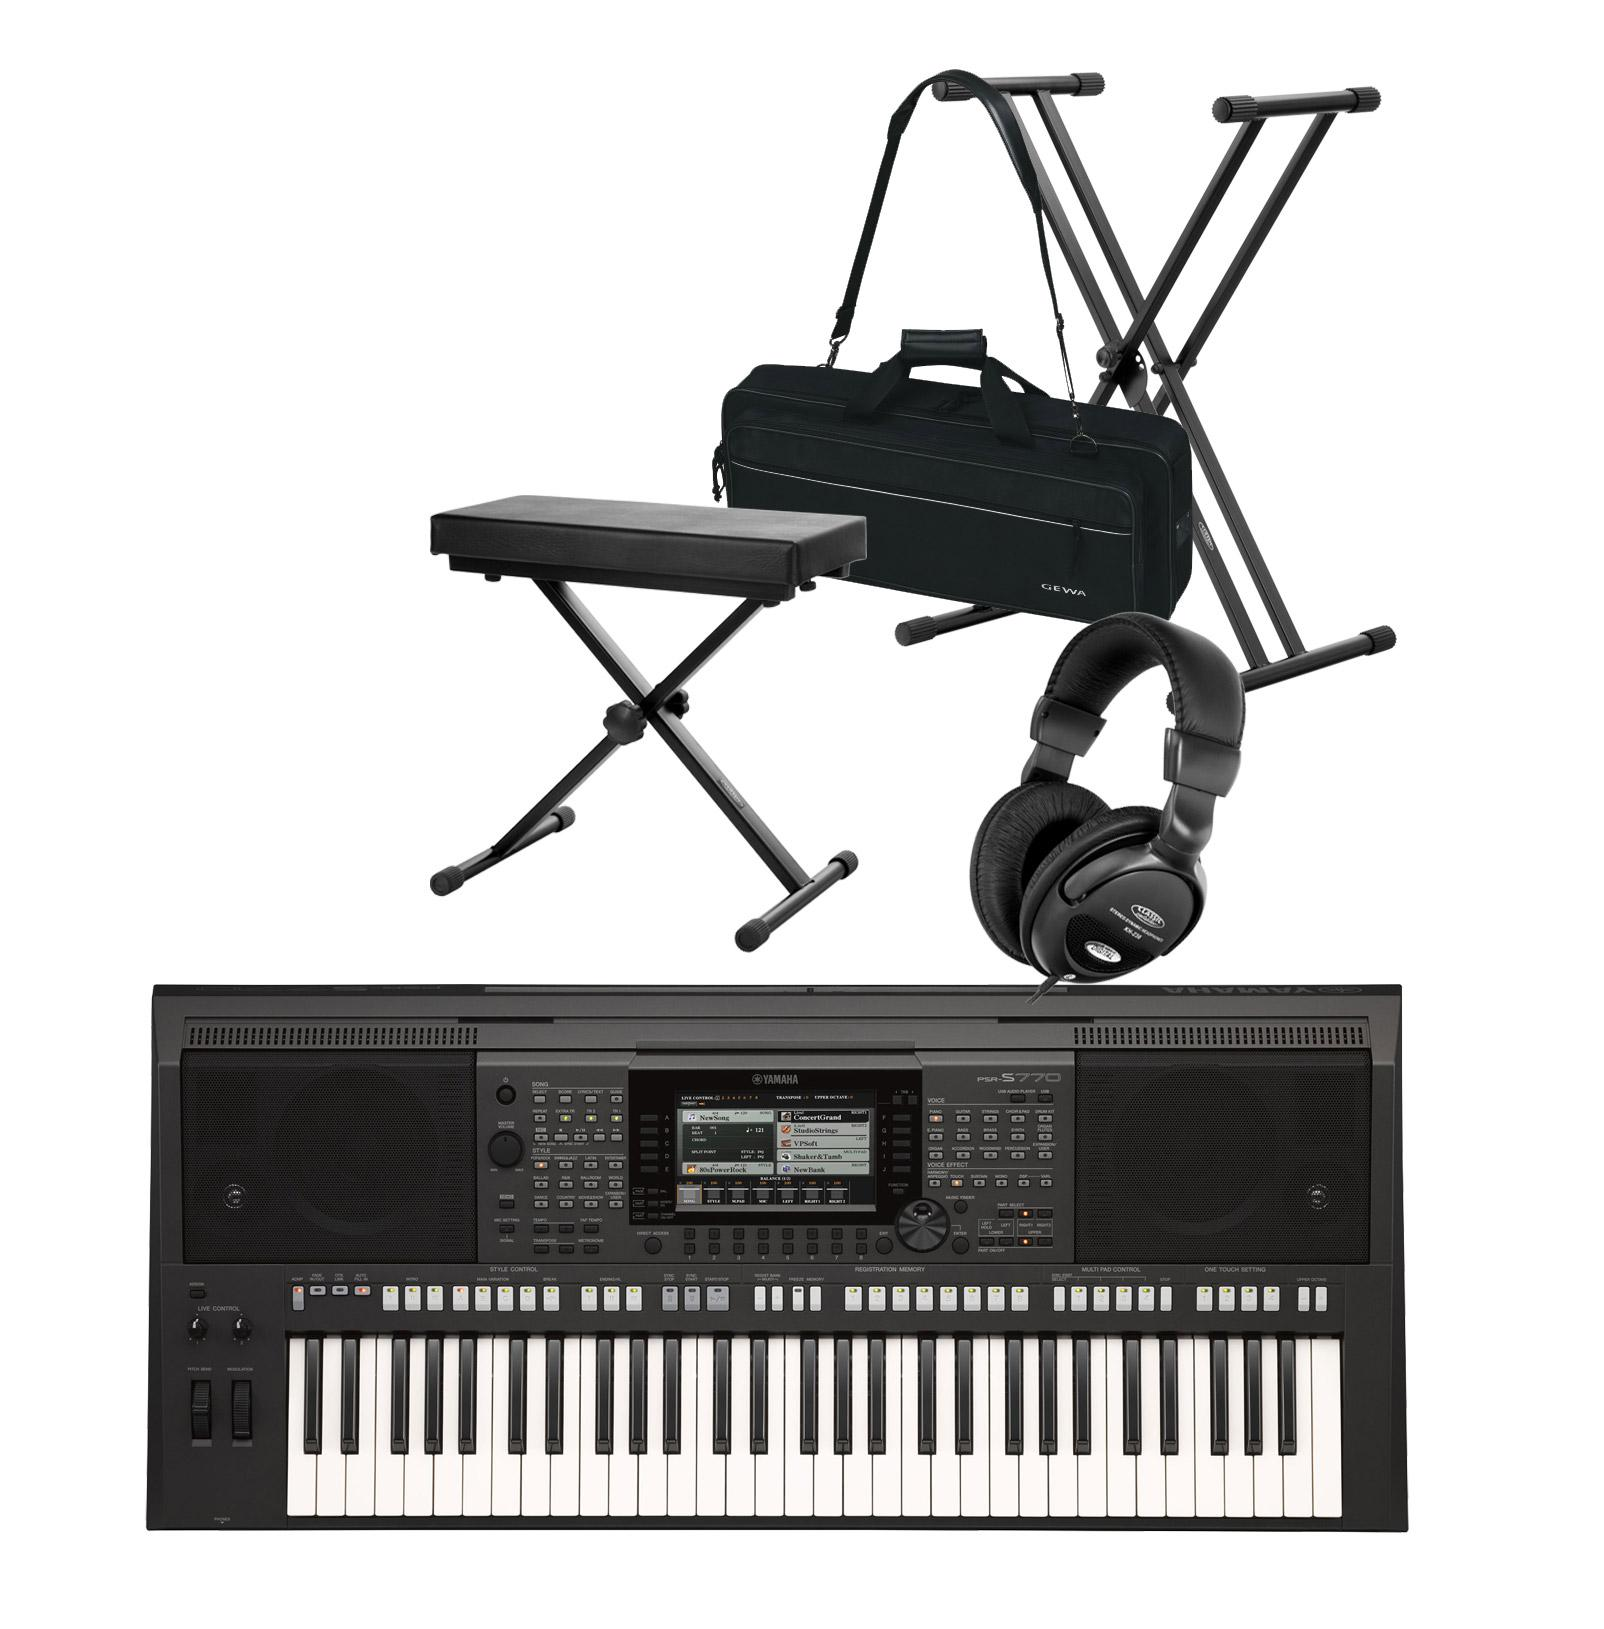 yamaha psr s770 keyboard deluxe set kirstein music shop. Black Bedroom Furniture Sets. Home Design Ideas